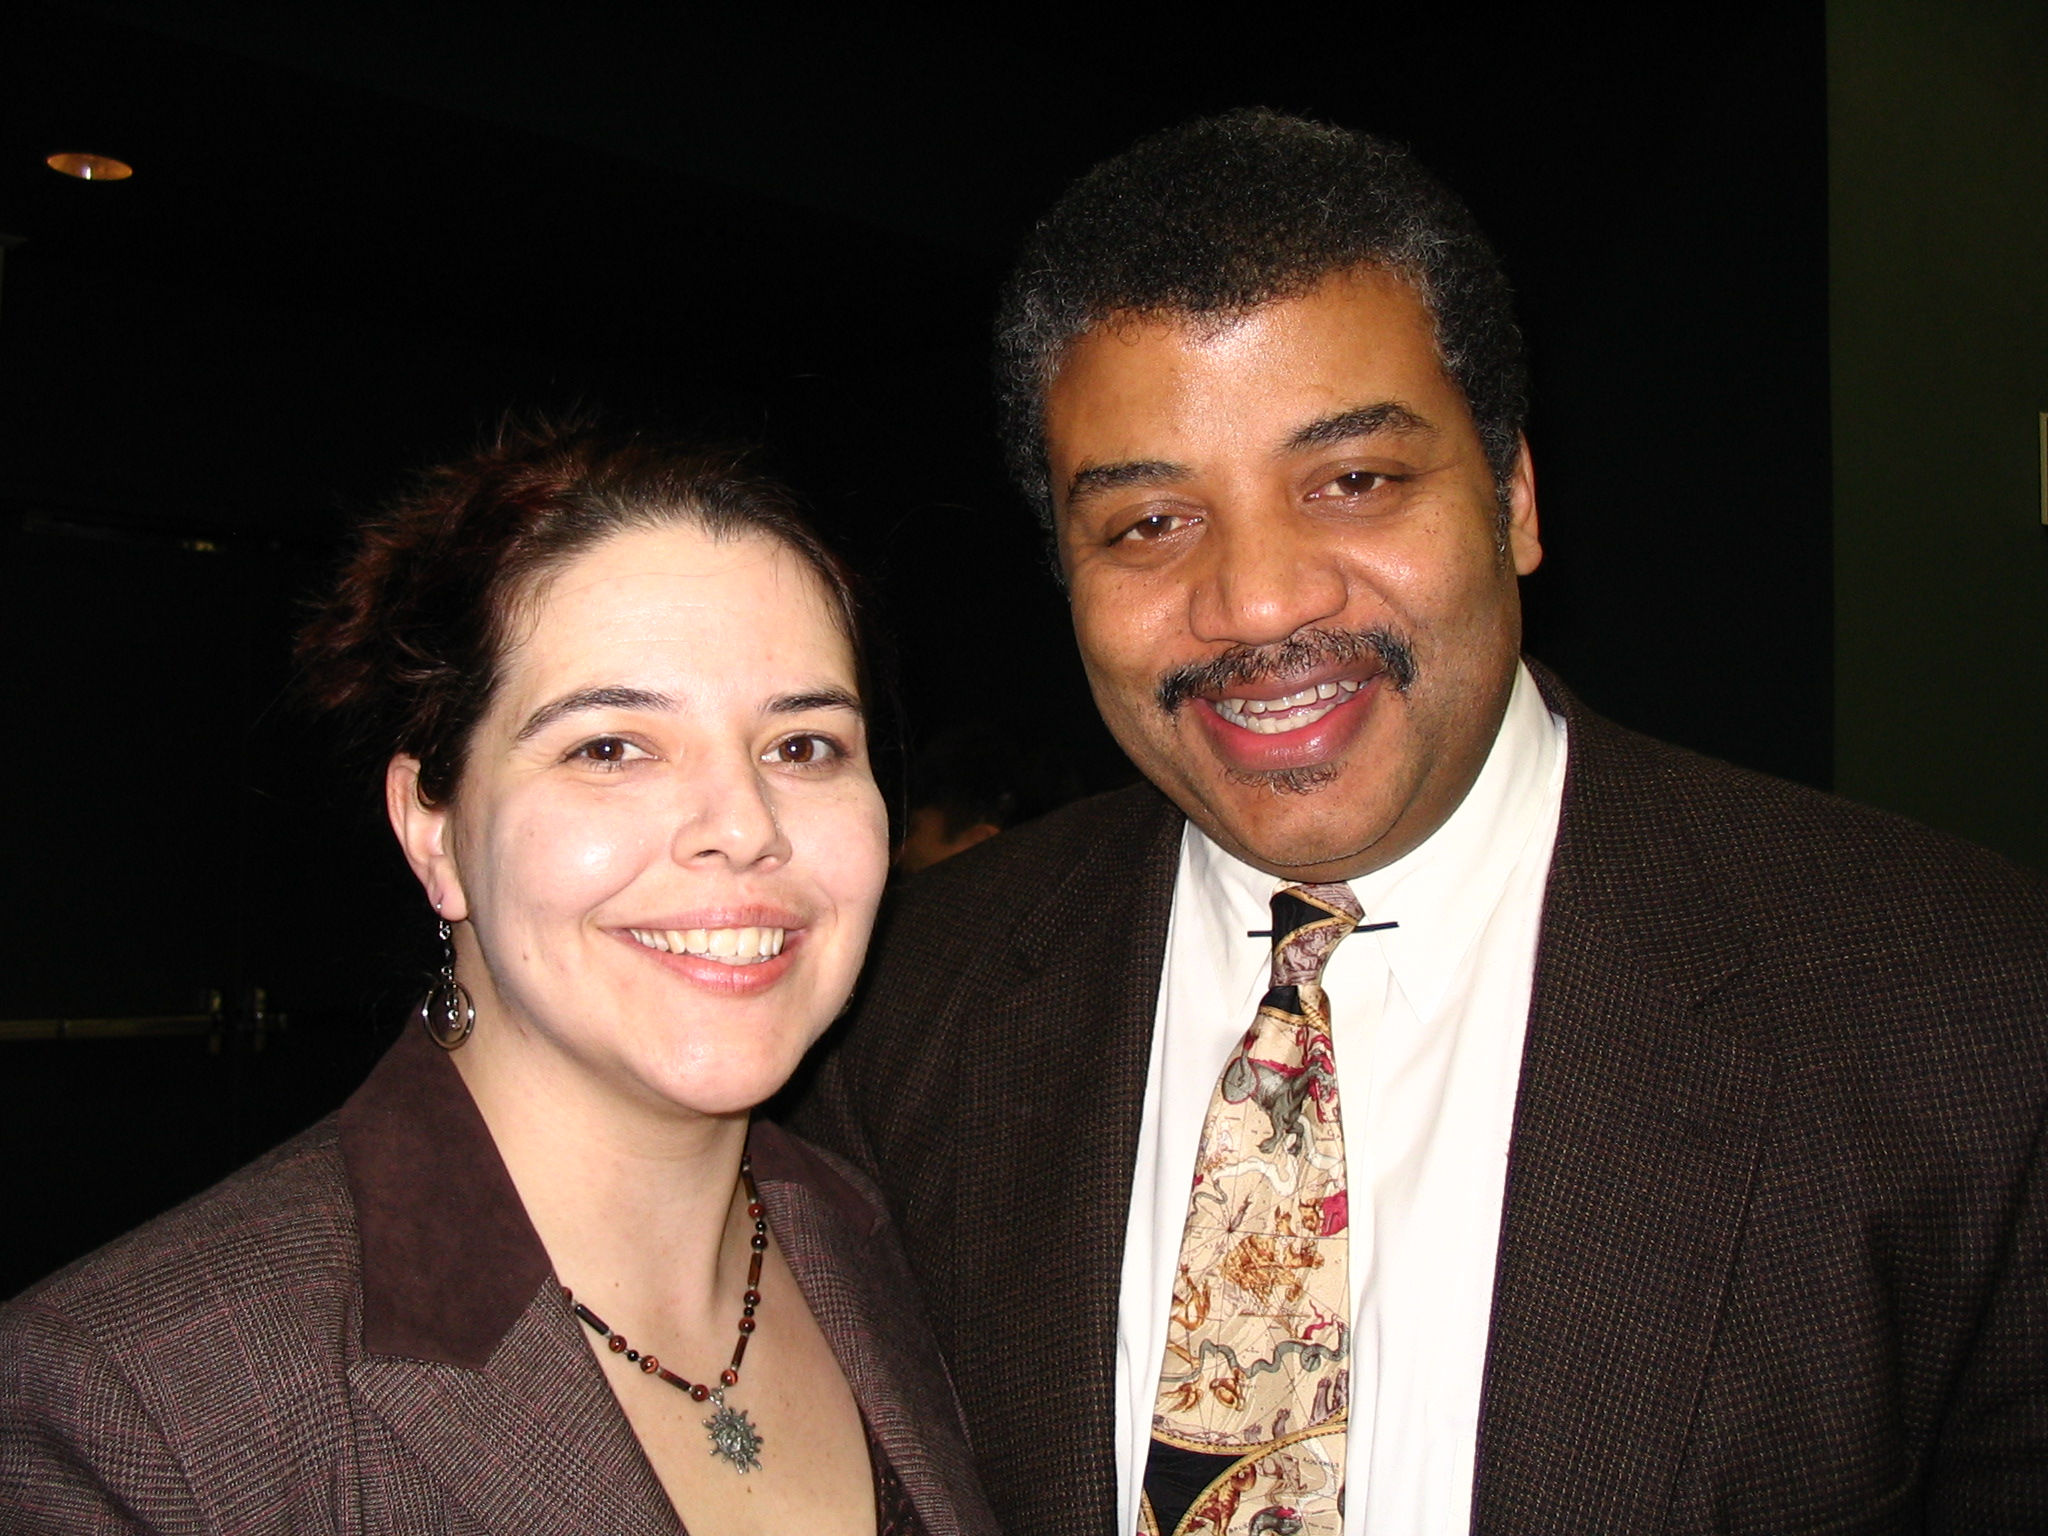 Pamela and Neil deGrasse Tyson